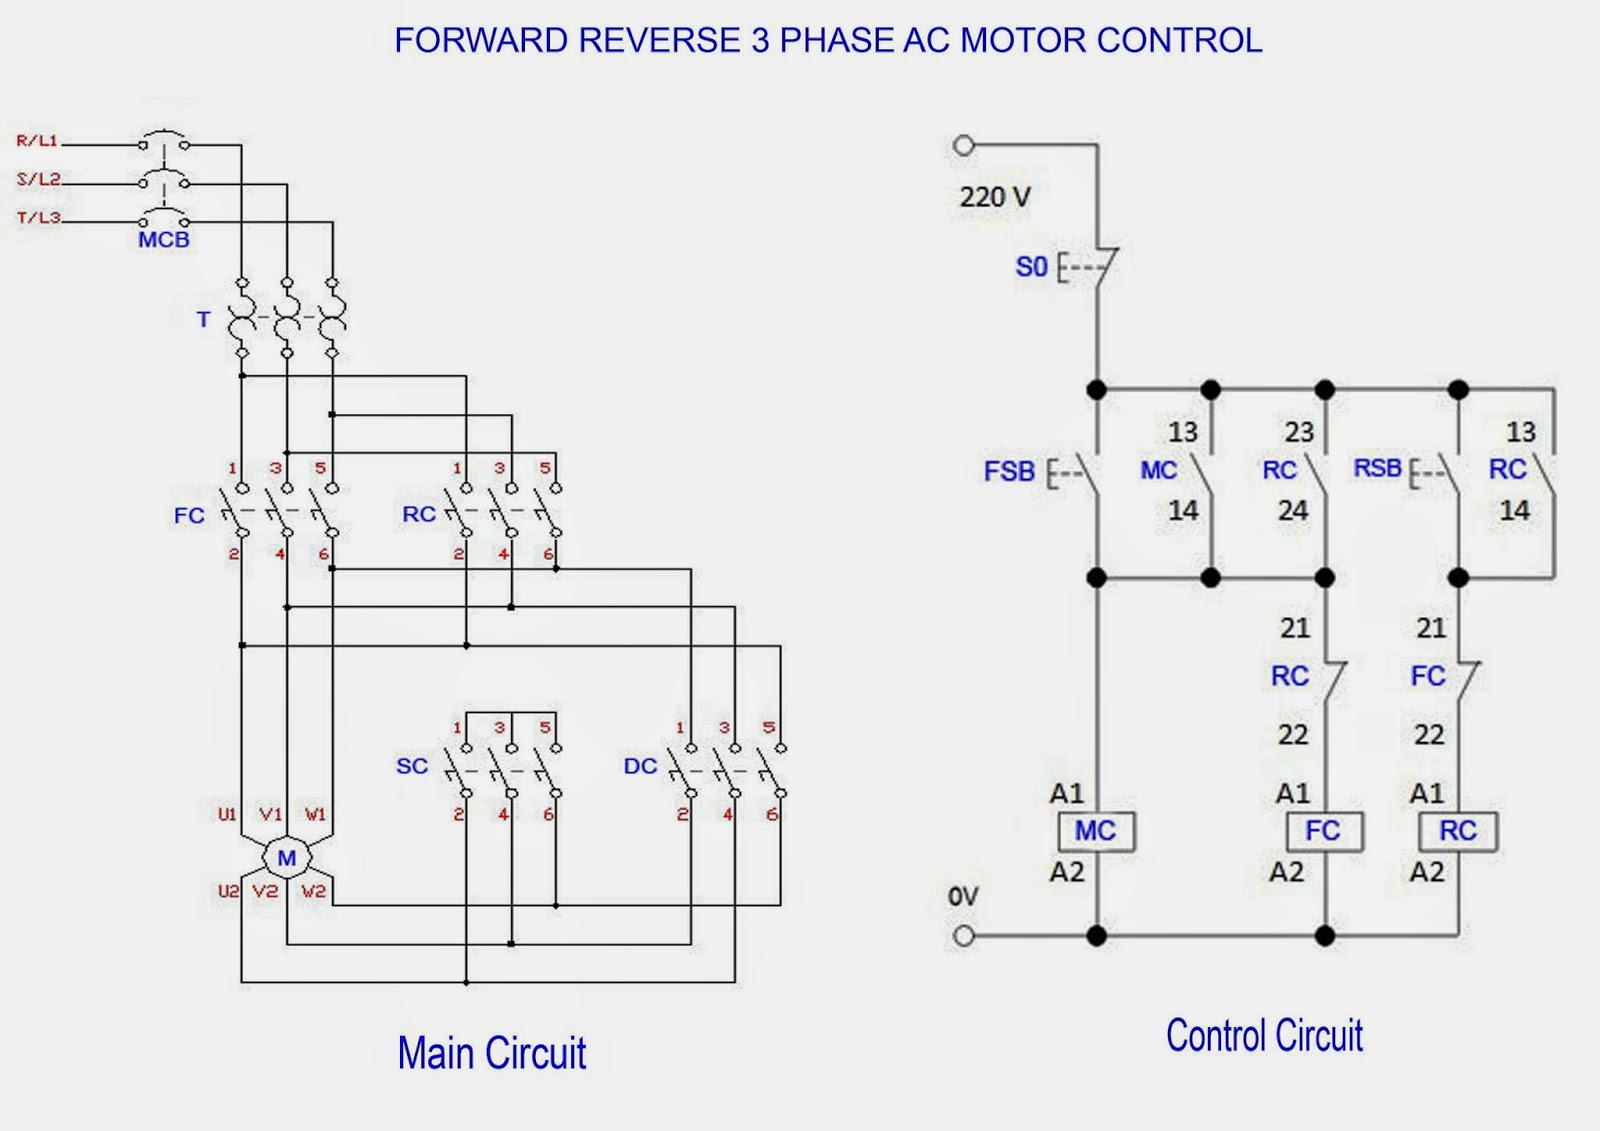 3 Phase Motor Starter Wiring Diagram | Schematic Diagram - 3 Phase Motors Wiring Diagram